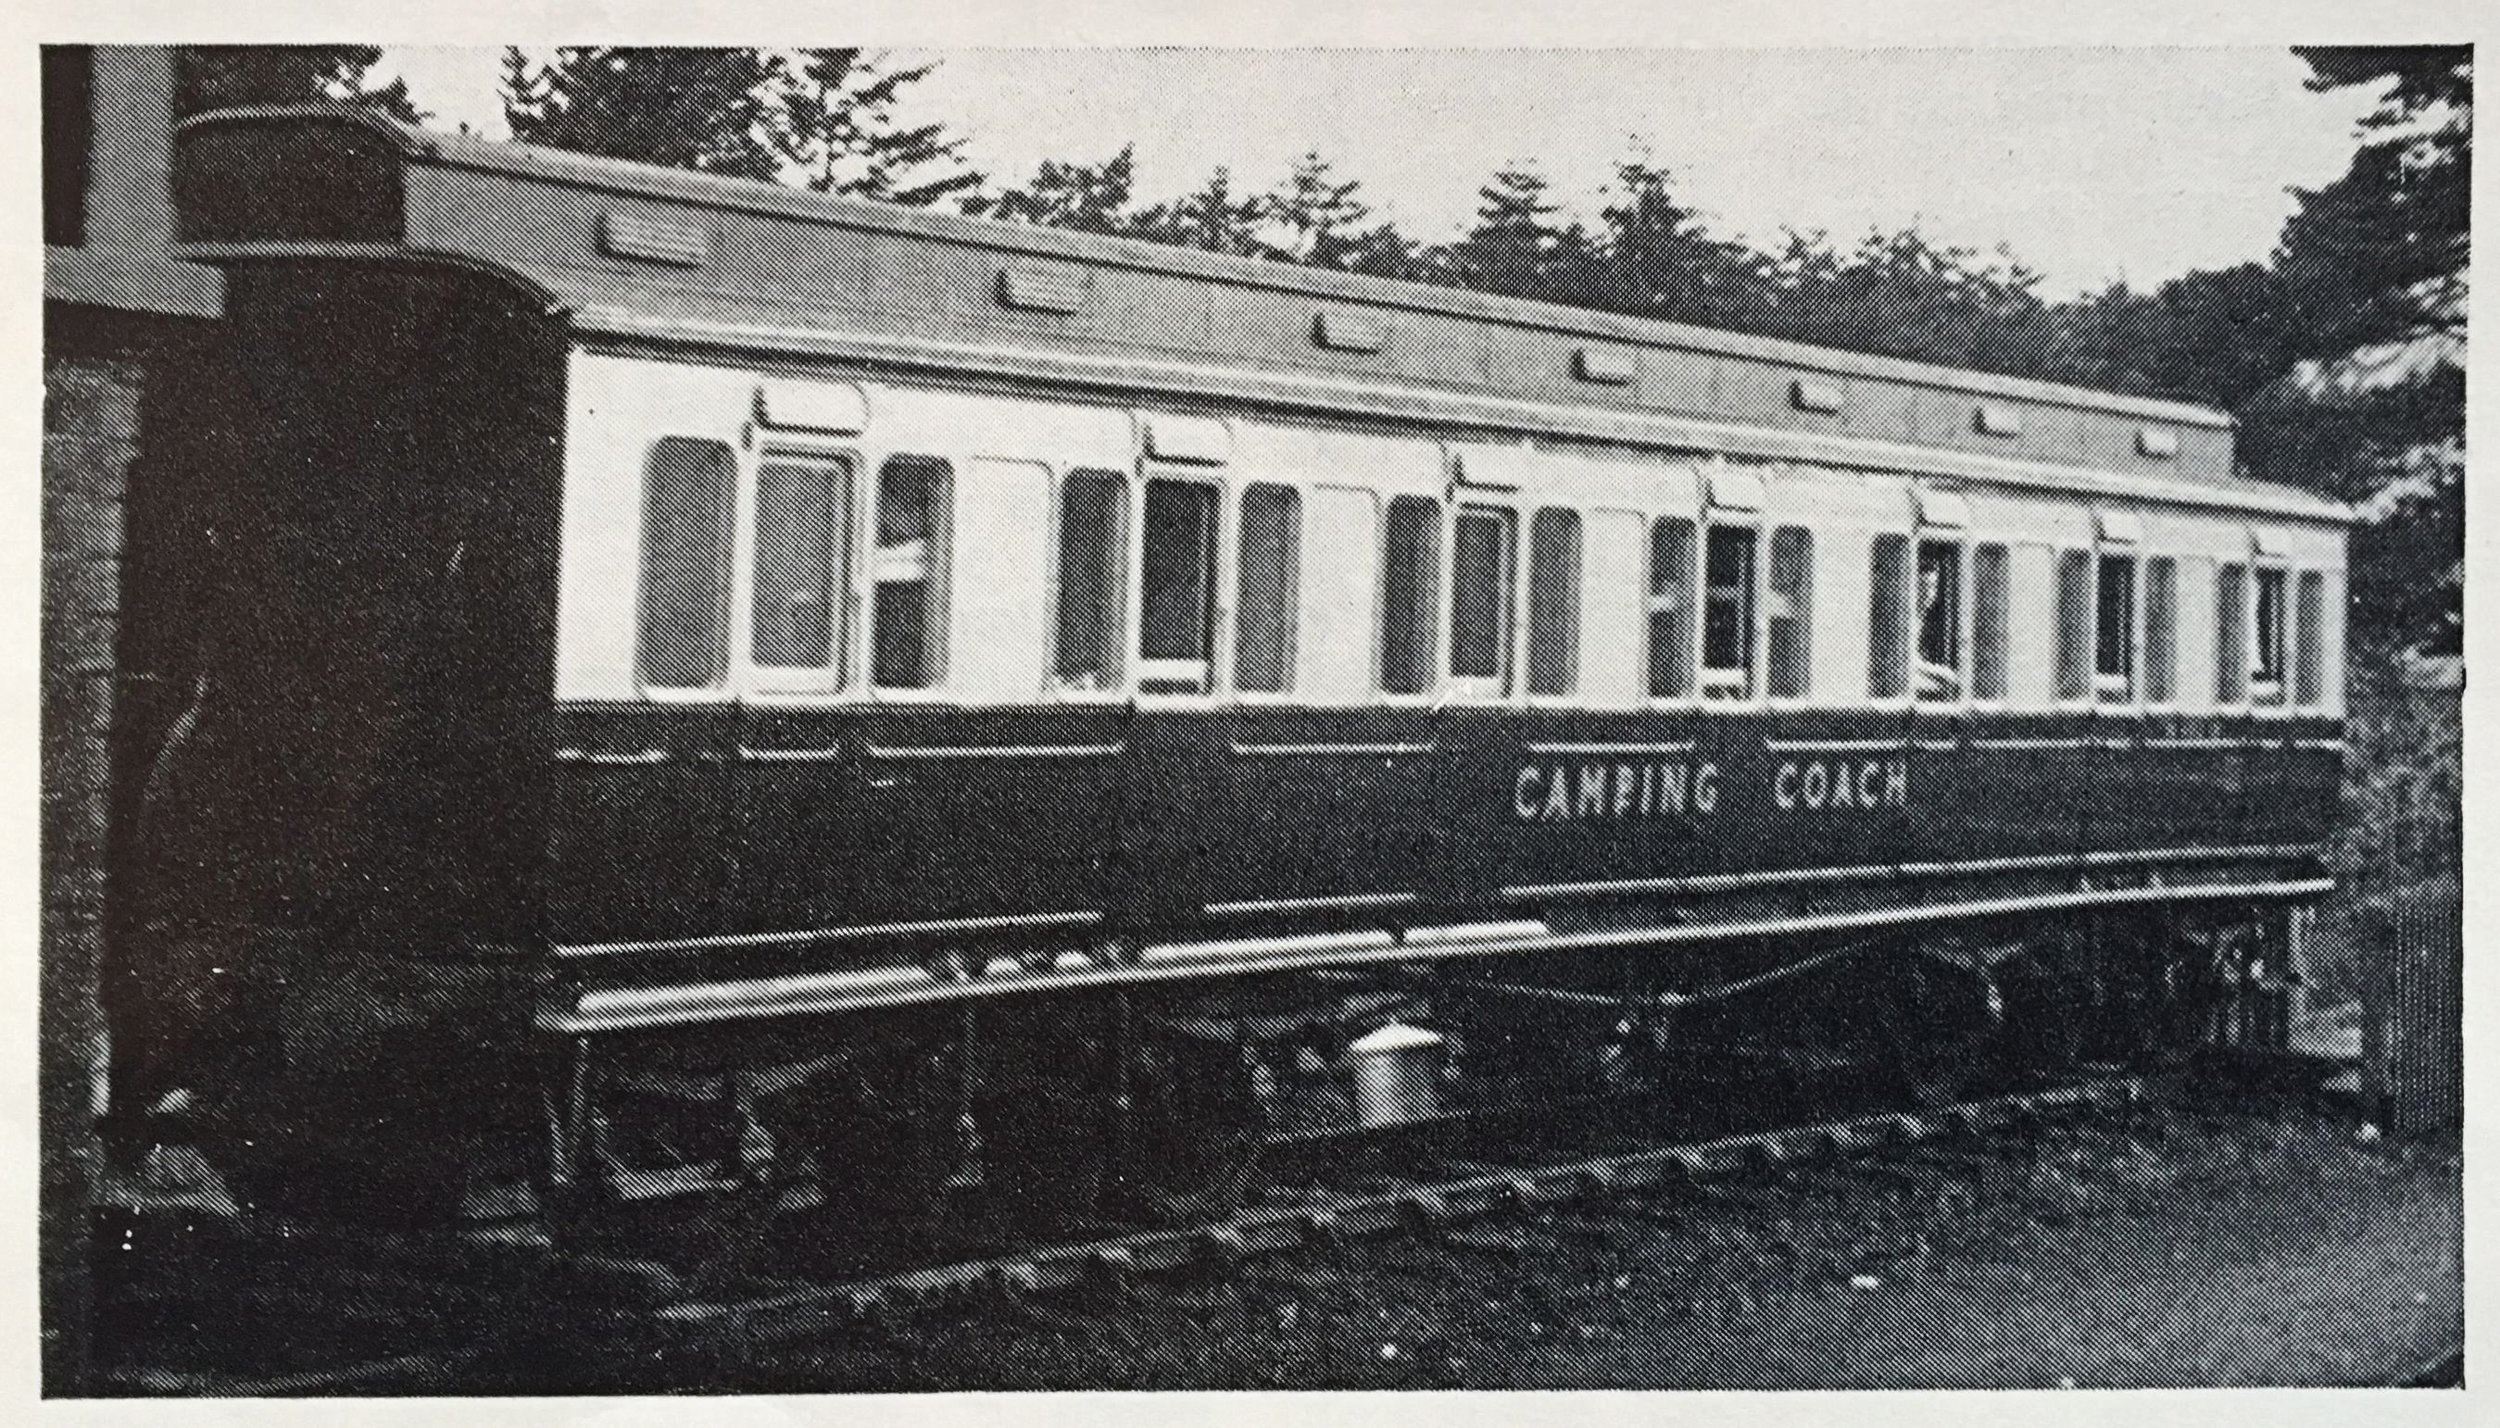 Ex-Great Western seven compartment Clerestory Camp Coach in later BR days. Location of site and origin of photograph are unfortunately unknown.